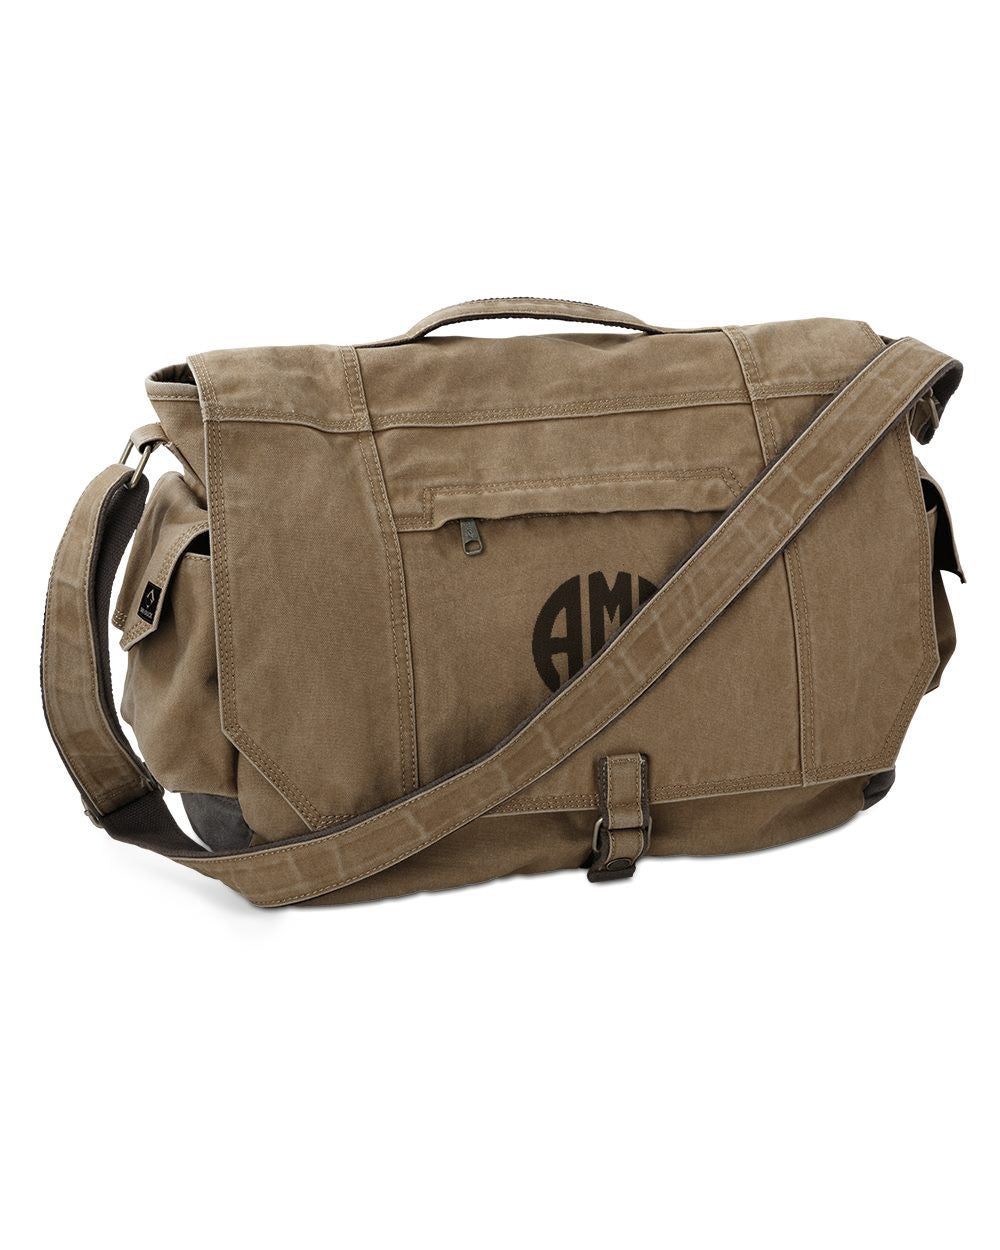 Cotton/Poly Monogrammed - 16 Inch Messenger Carry Bag - 1036